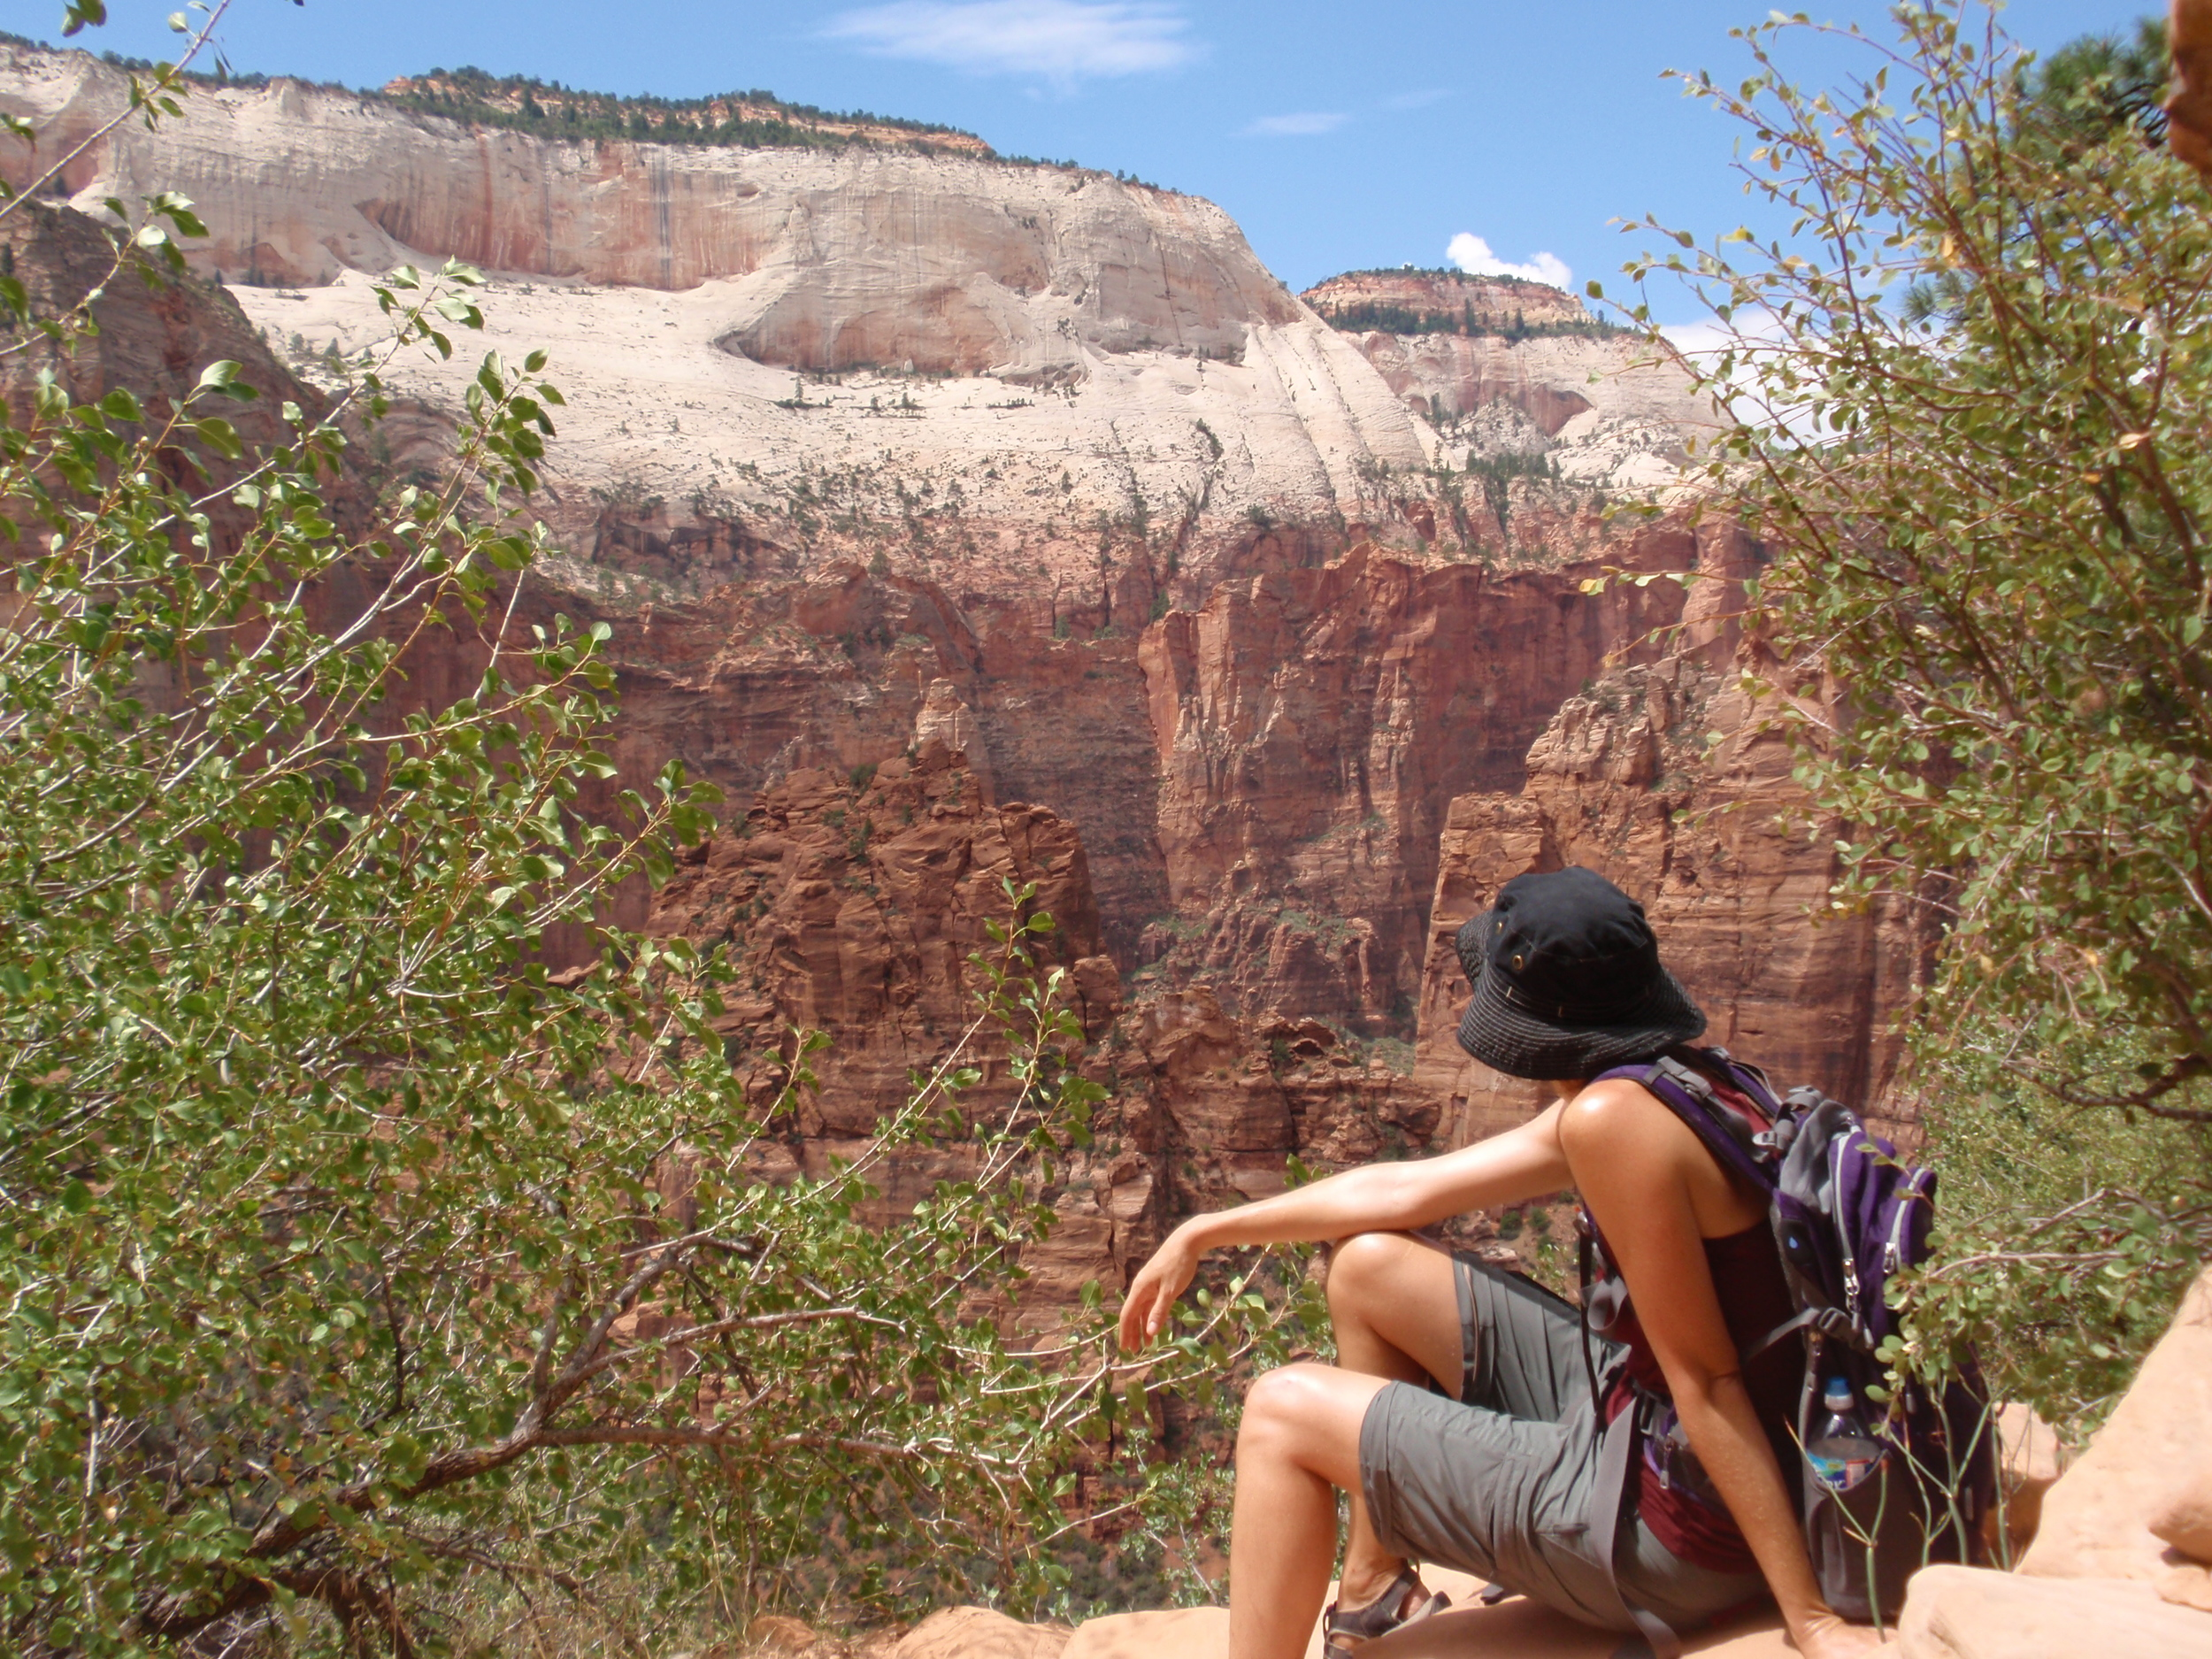 Finding inspiration in Zion NP